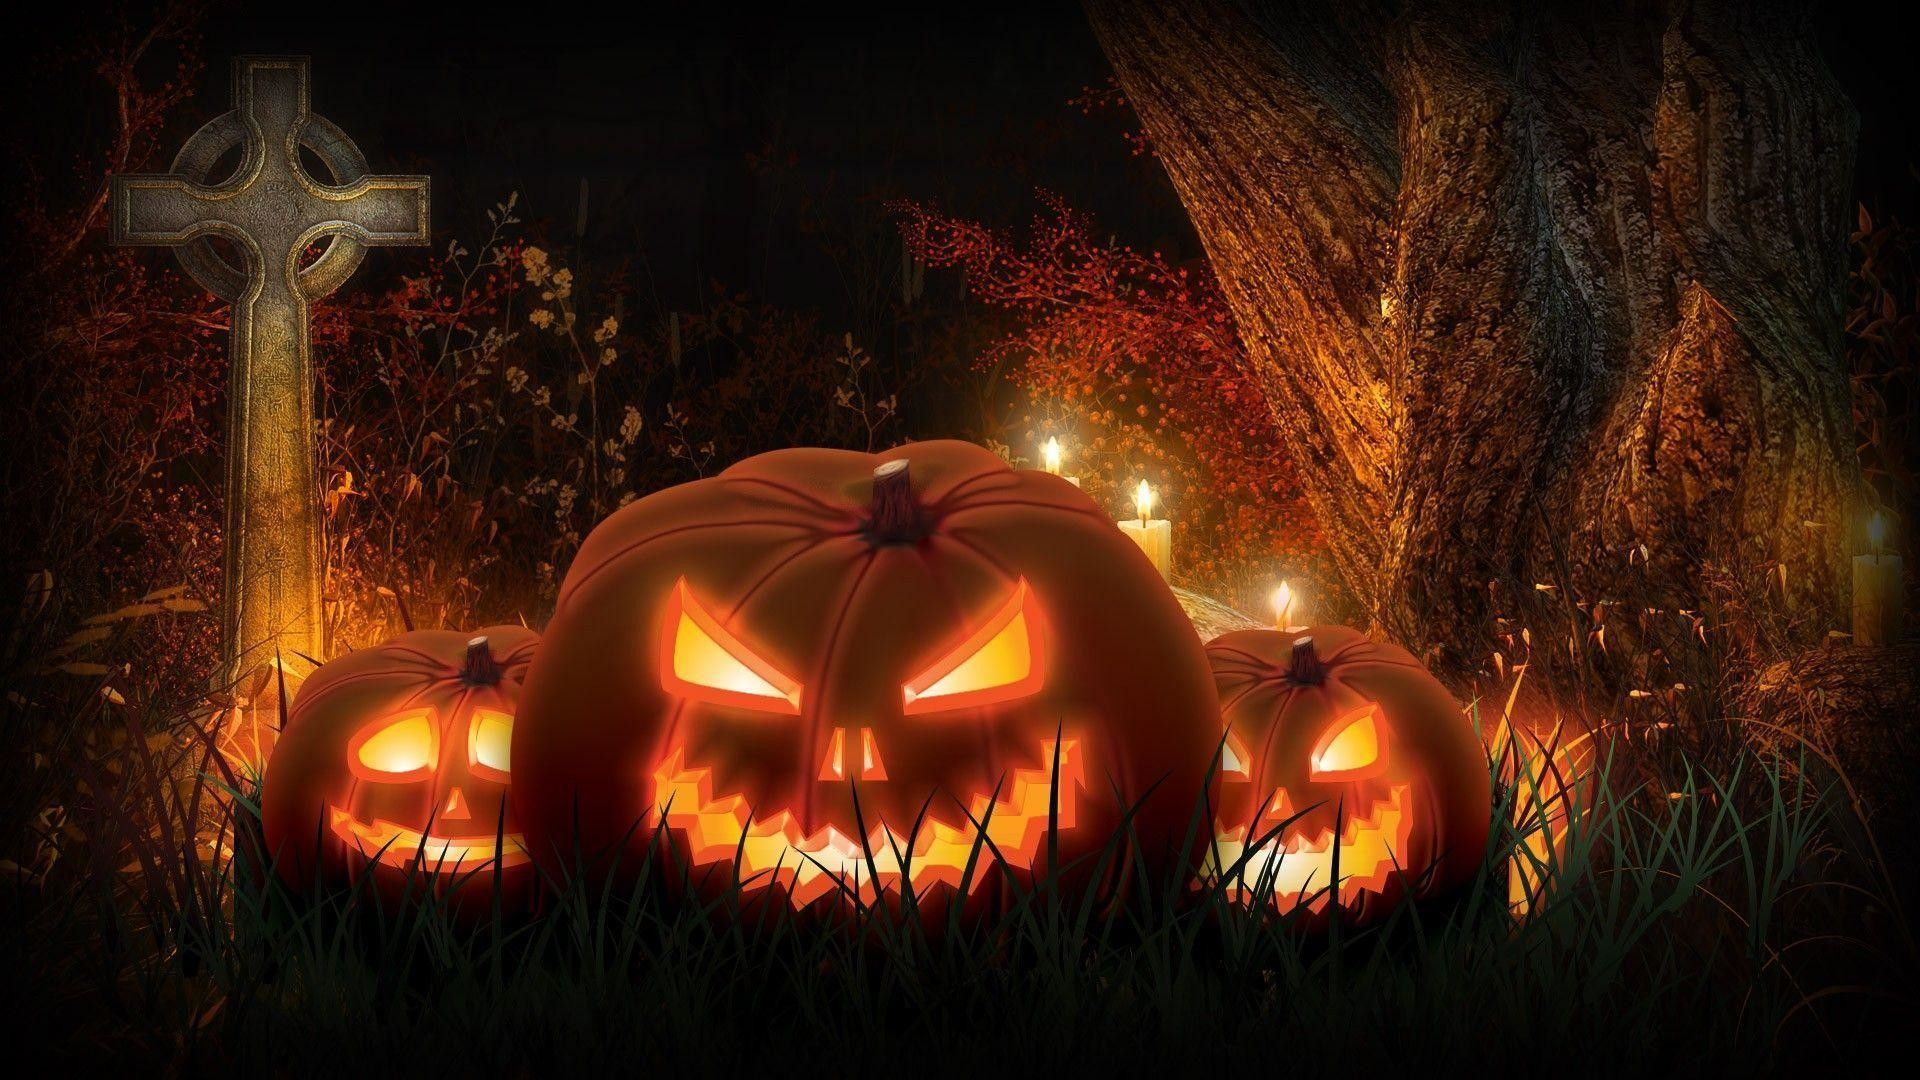 1920x1080 Scary Halloween Pumpkin Wallpaper 1080p Toobjects Halloween Pictures Halloween Pumpkin Images Scary Halloween Pumpkins